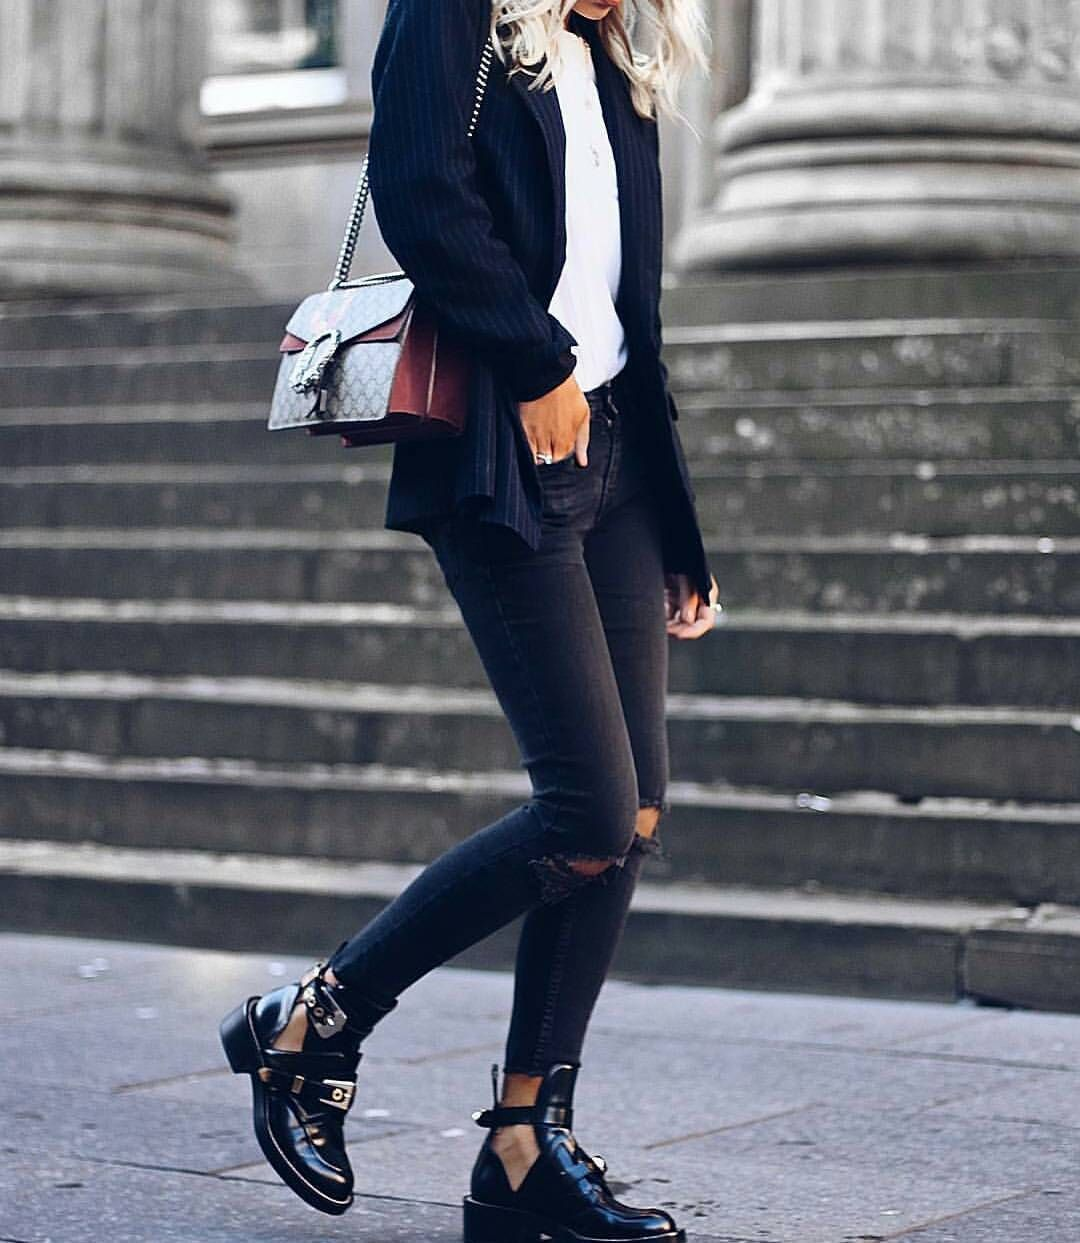 25ddc7c20db4 Cut out balenciaga ankle boots outfit for fall and winter ...